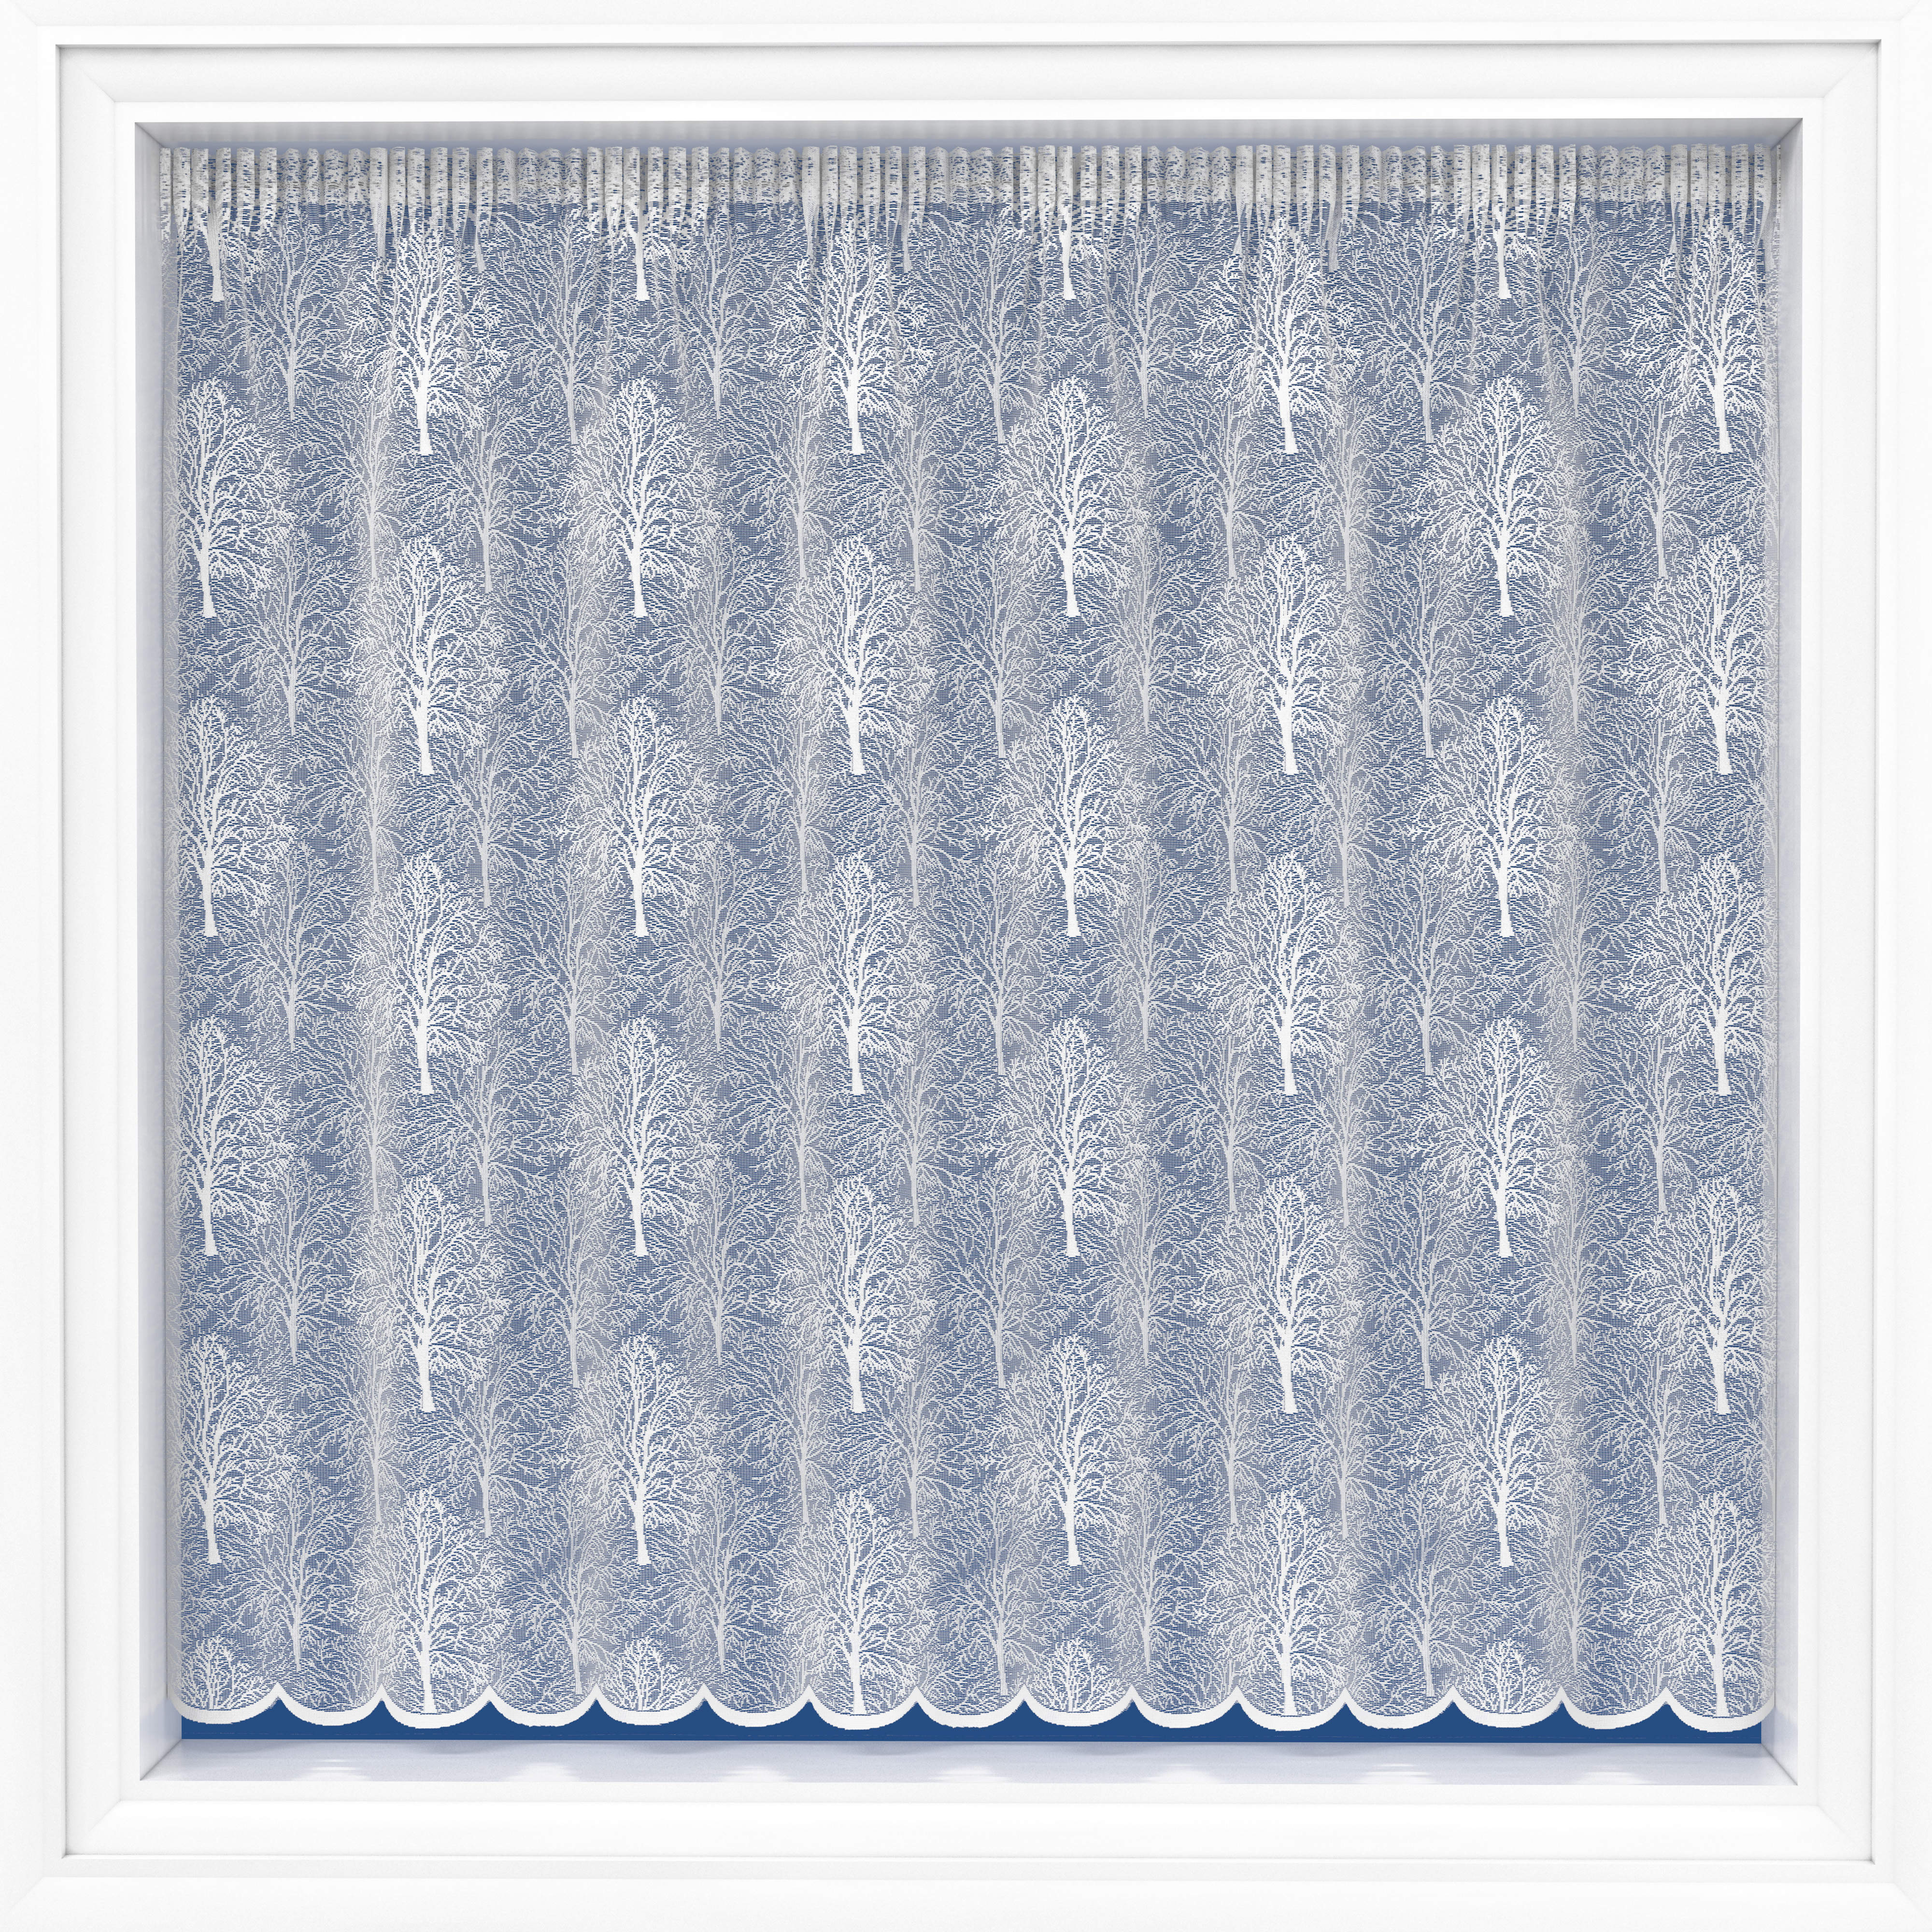 "BIRCH NET CURTAIN - 160cm (63"") length"